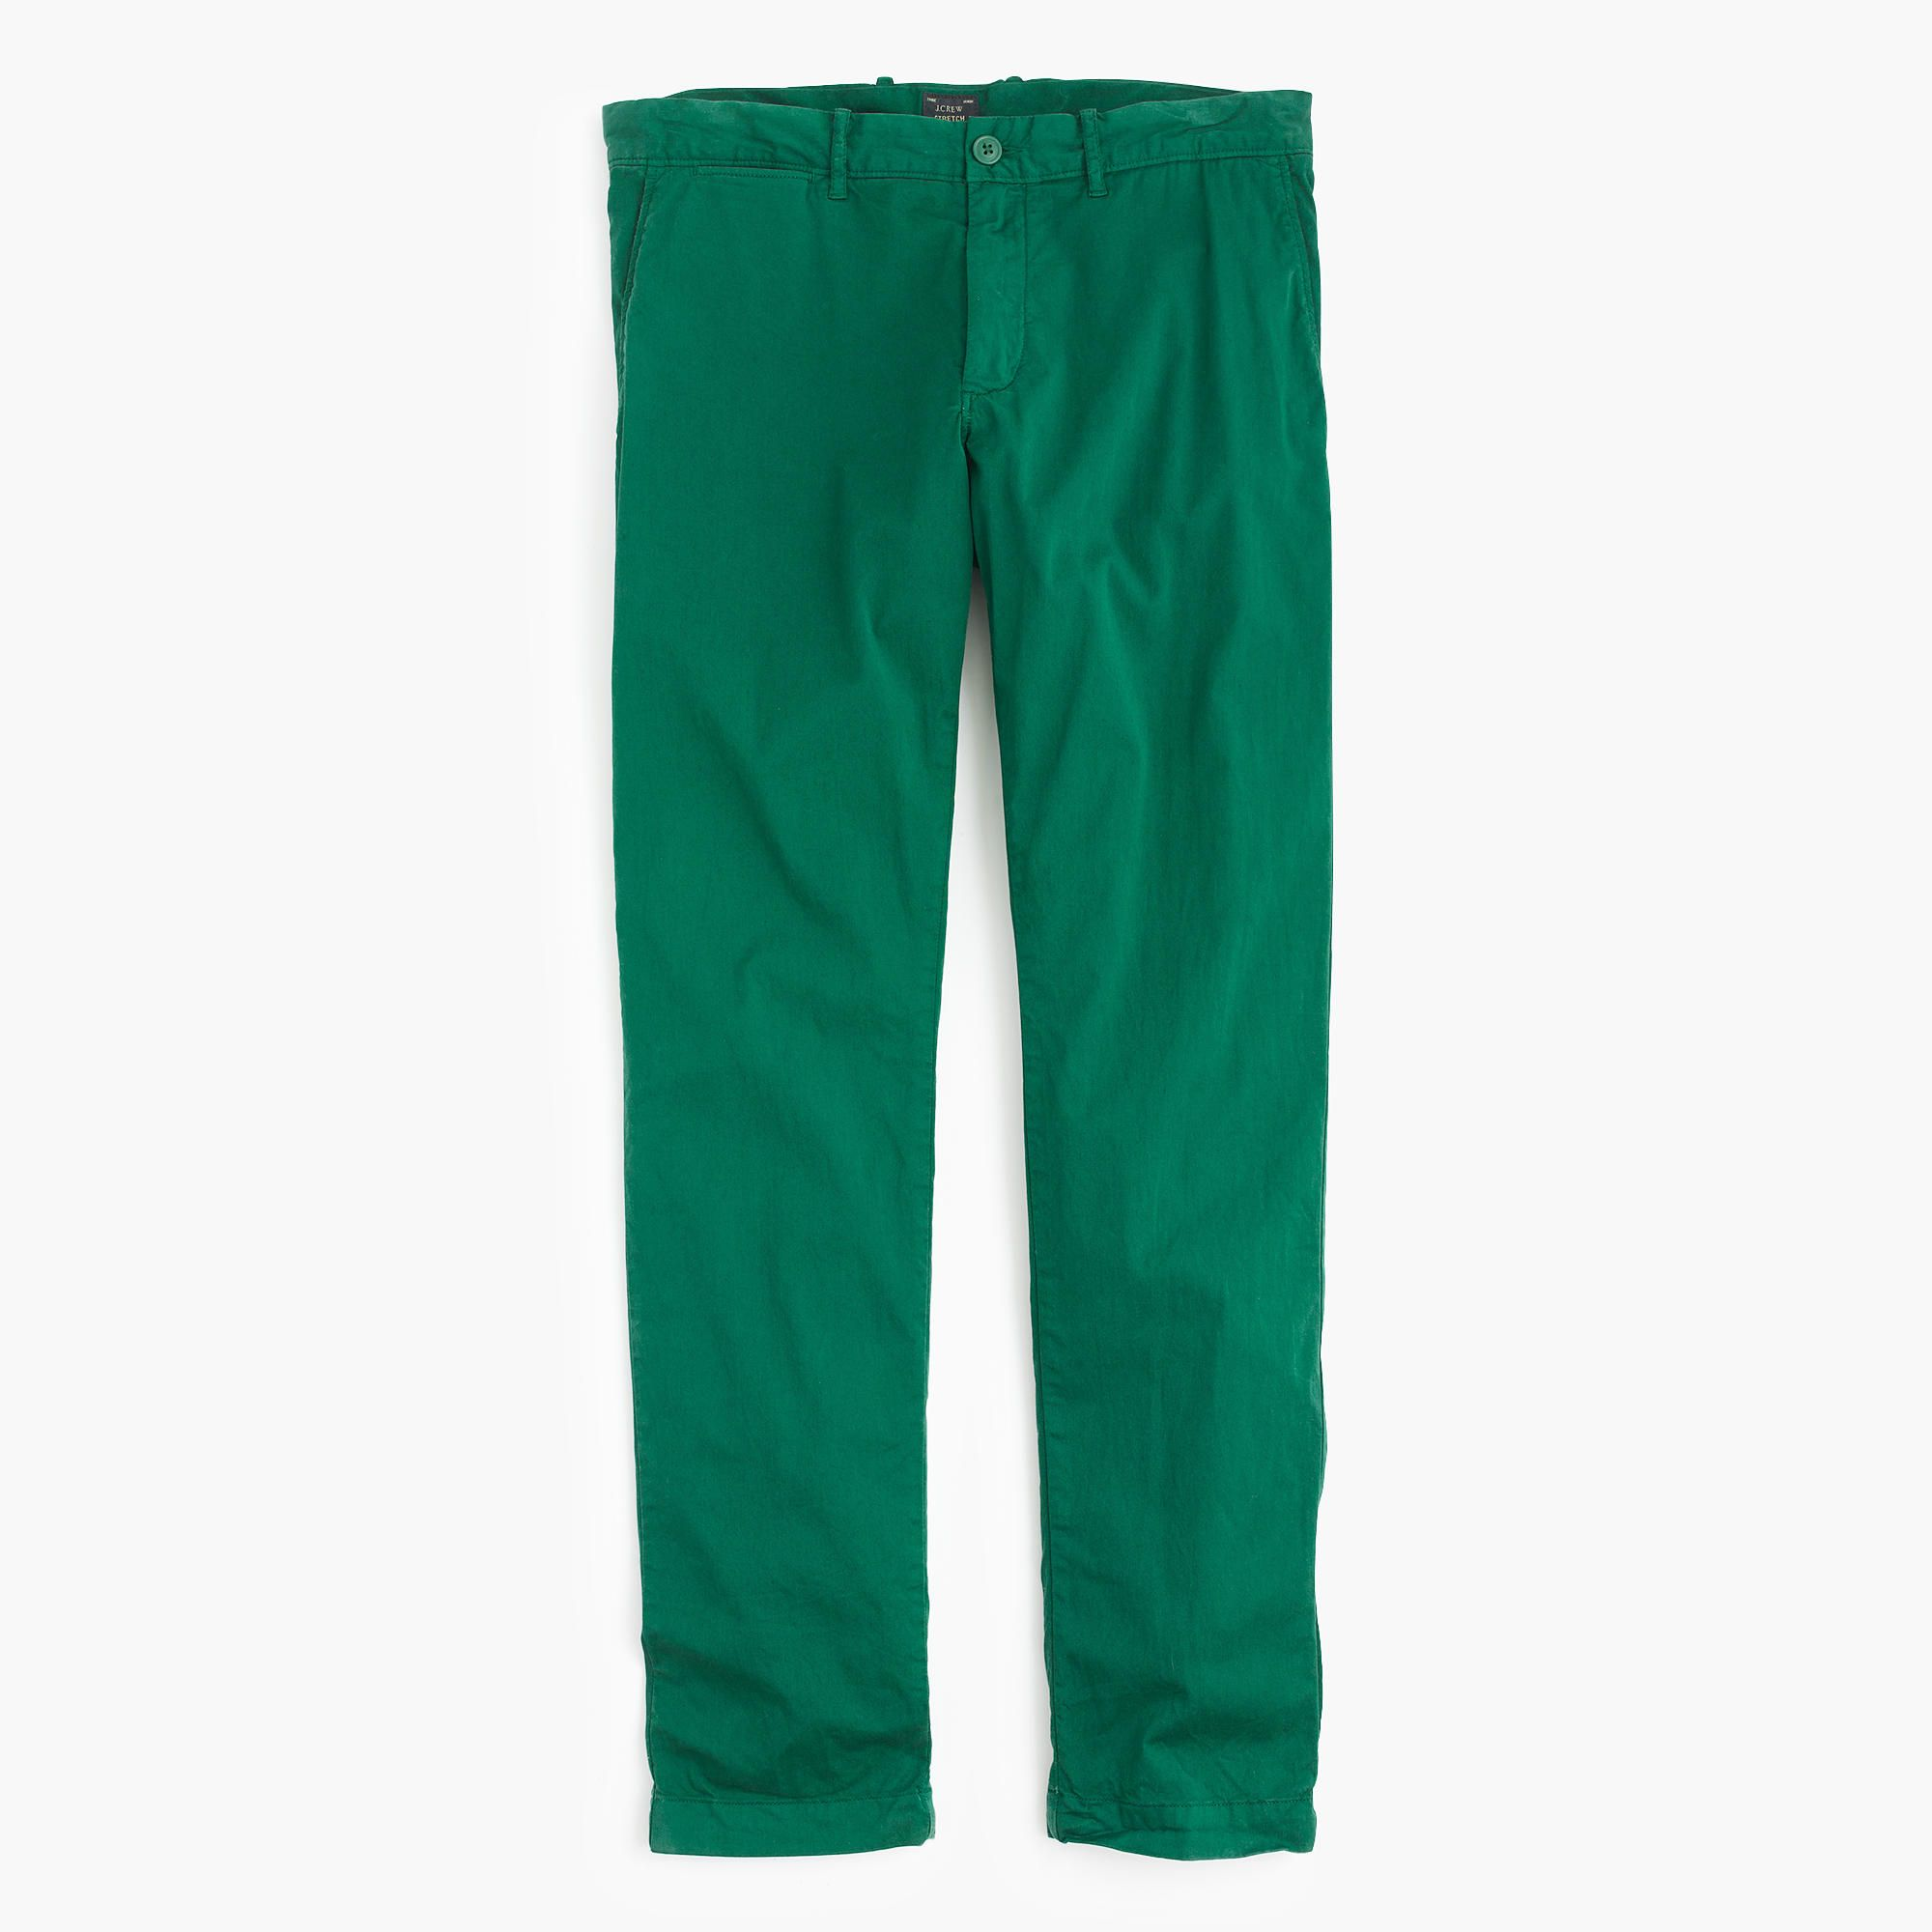 451773fb96b232 J.Crew - in off white Lightweight garment-dyed stretch chino pant in 484  slim fit